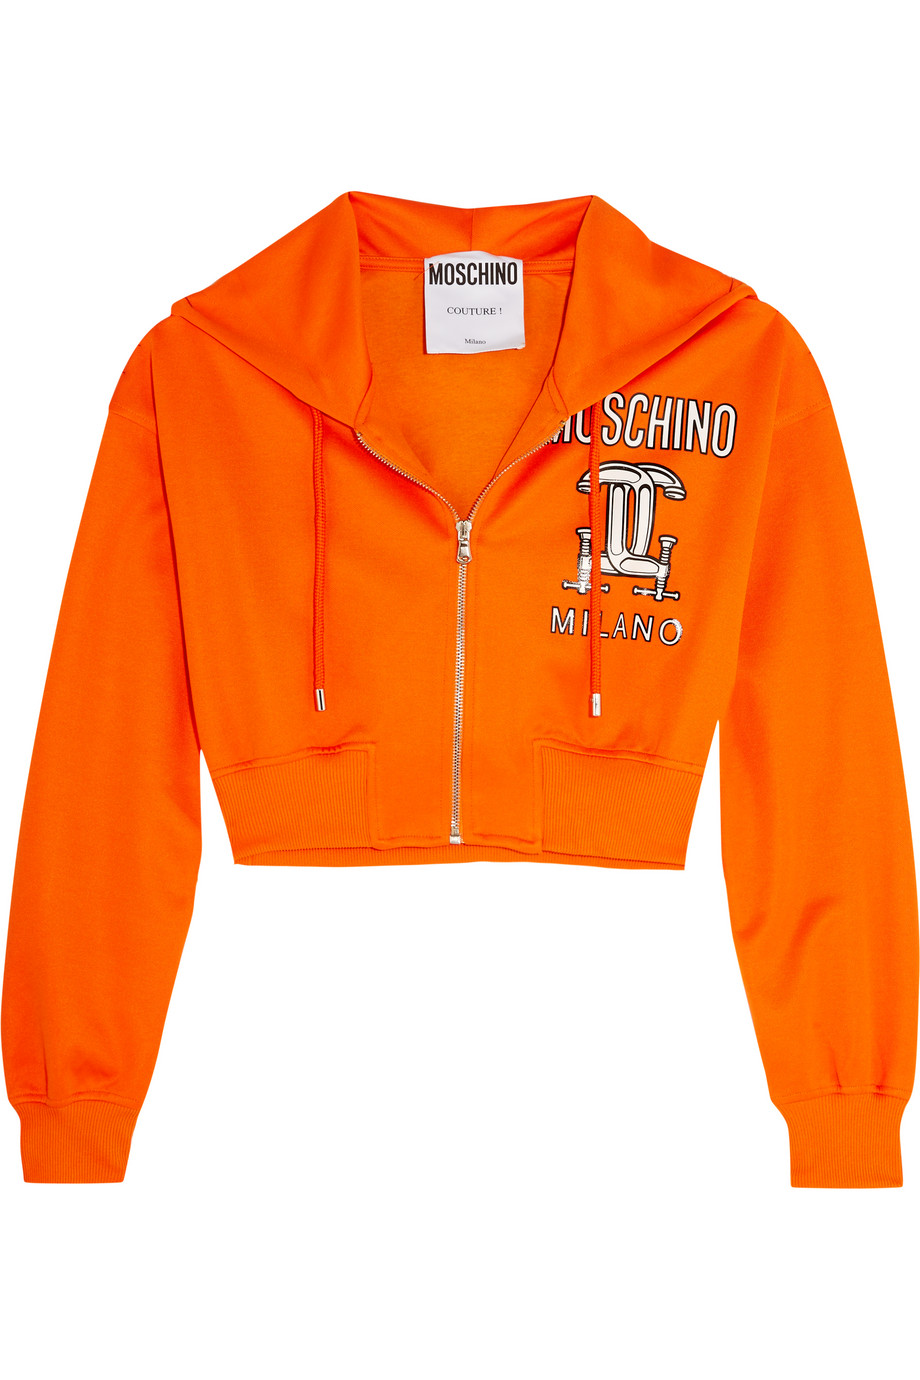 Moschino Cropped Printed Jersey Hooded Top, Orange, Women's, Size: L